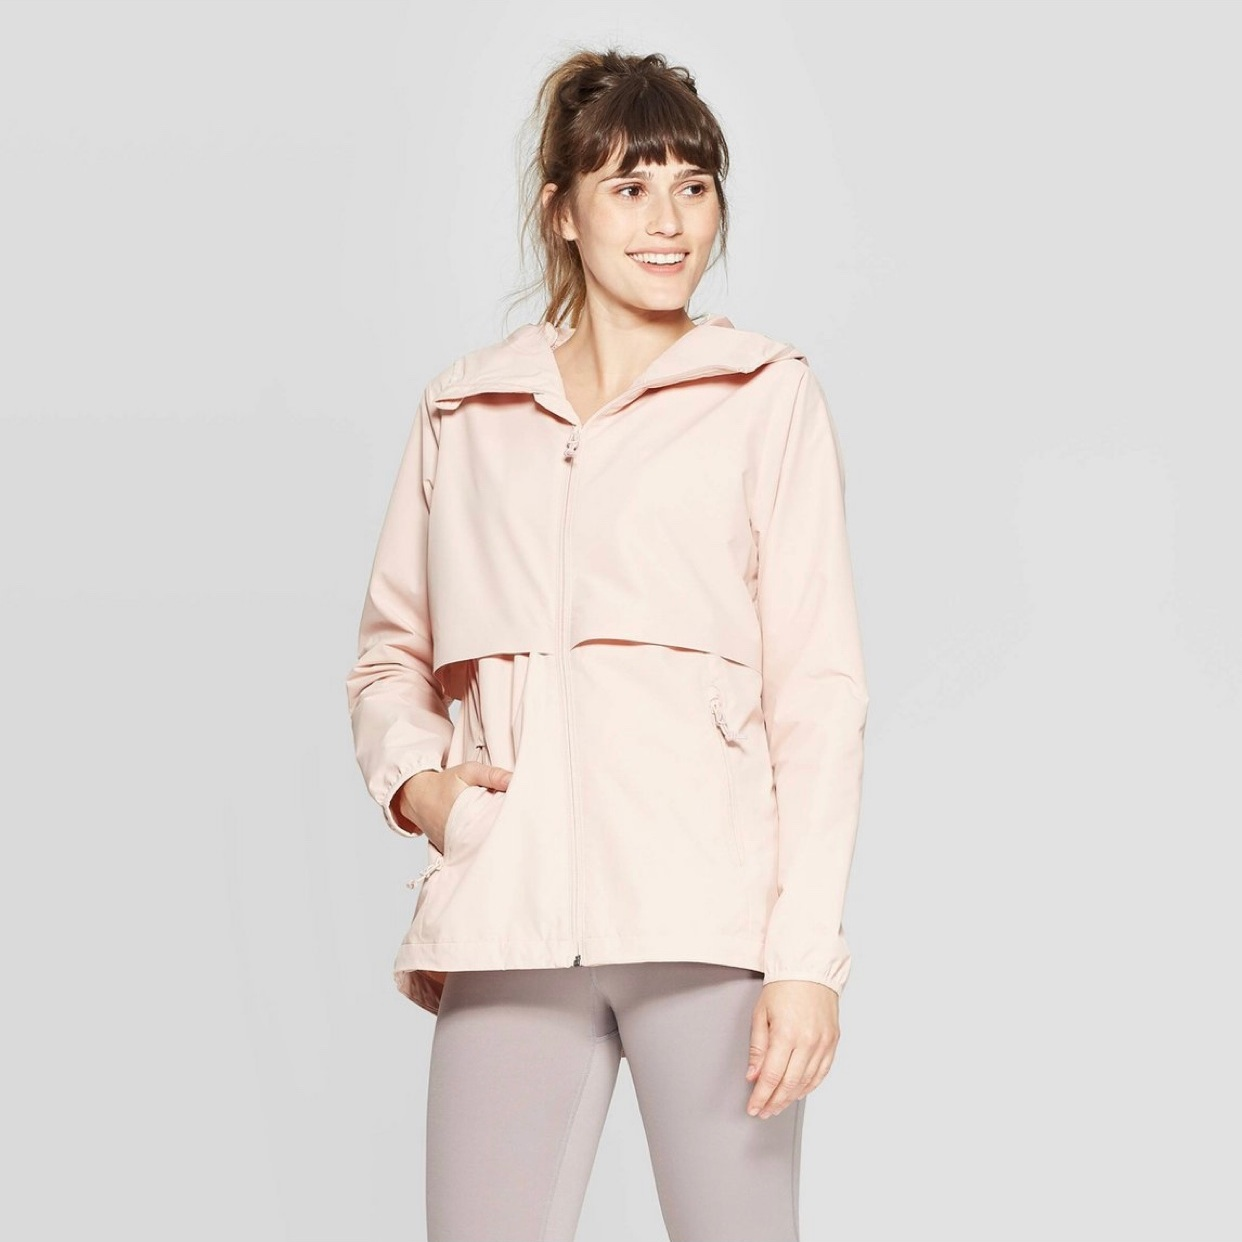 - I'm hurricane season ready with this baby! The blush color pulled me in, but it's a great quality jacket!Find it here.